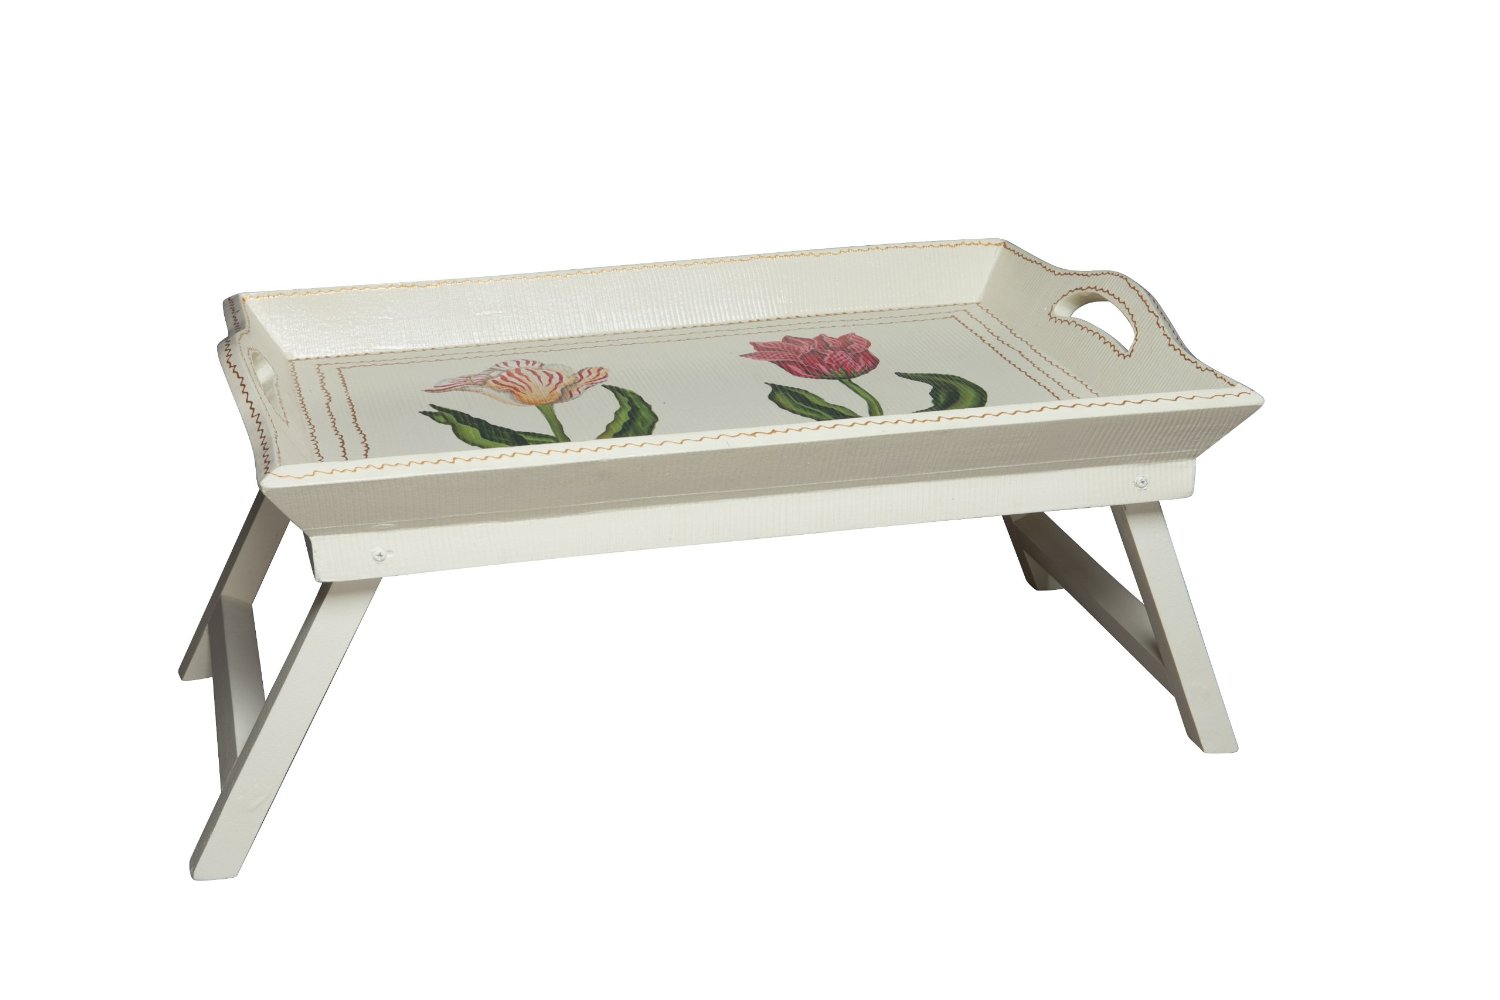 Bed Trays With Legs 28 Images Adjustable Laptop Table